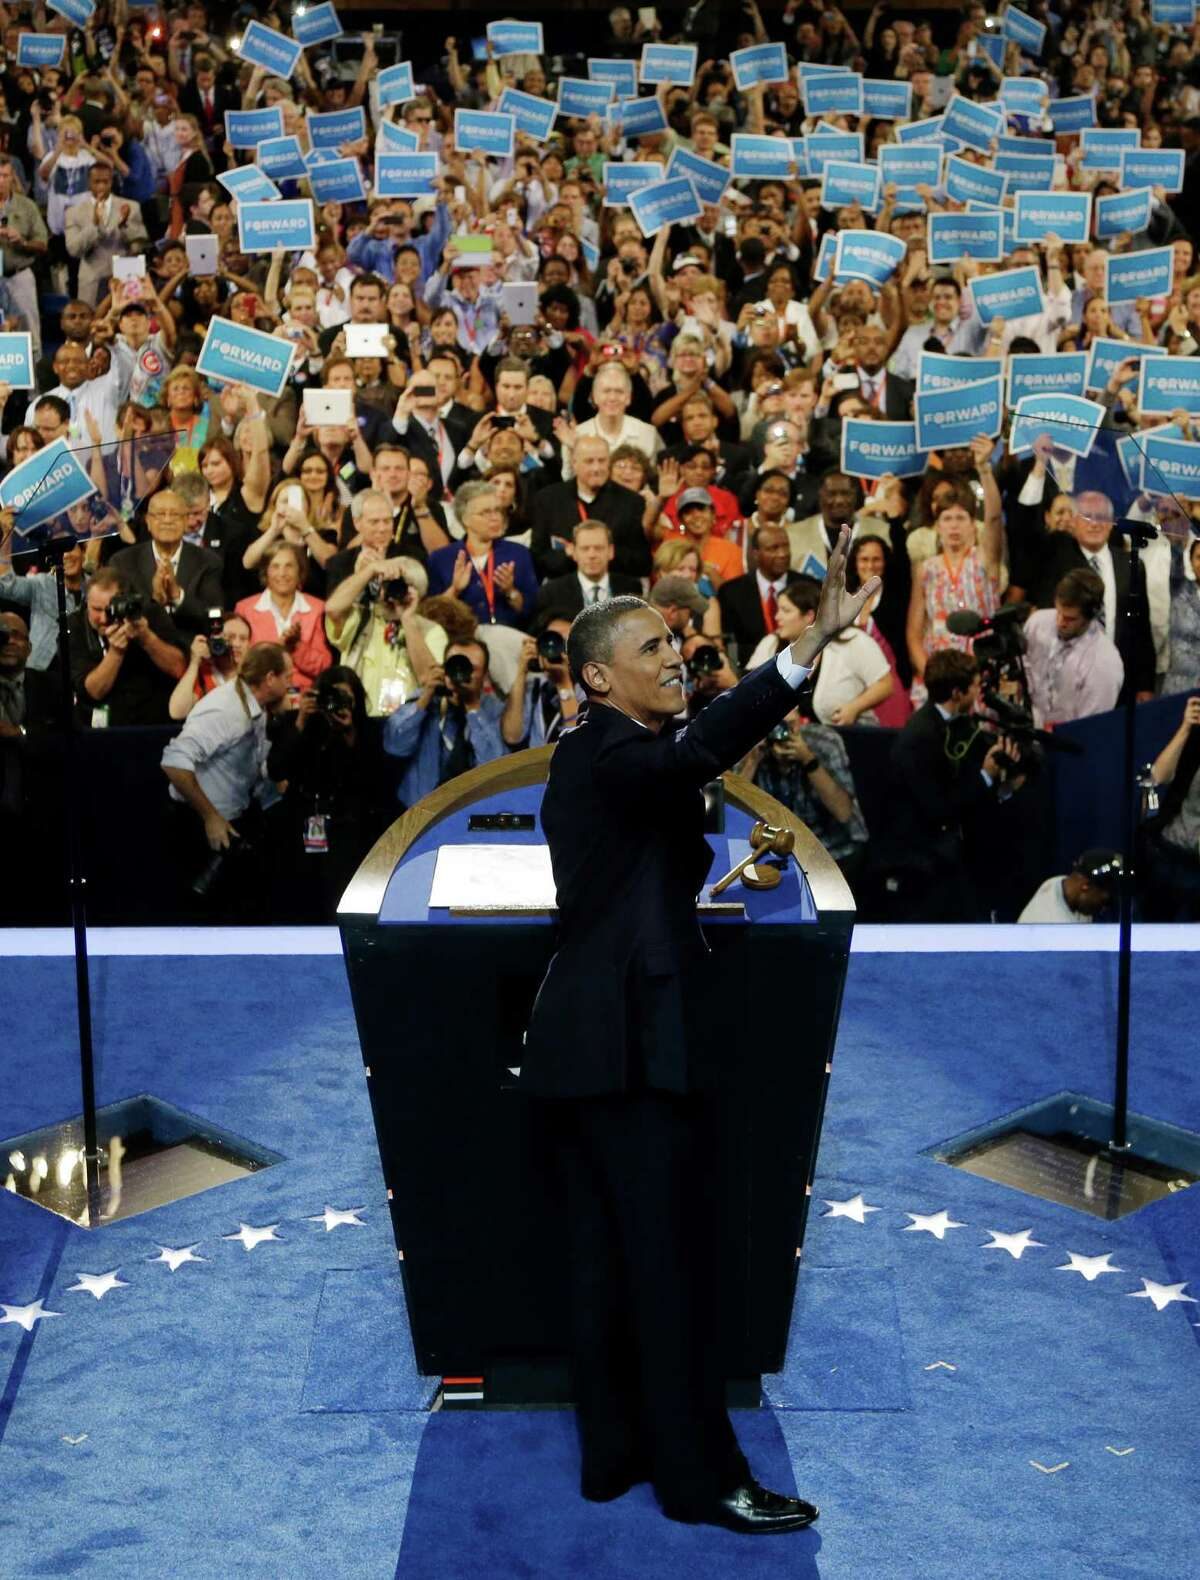 President Barack Obama waves to delegates at the Democratic National Convention in Charlotte, N.C., on Thursday, Sept. 6, 2012. (AP Photo/Charlie Neibergall)